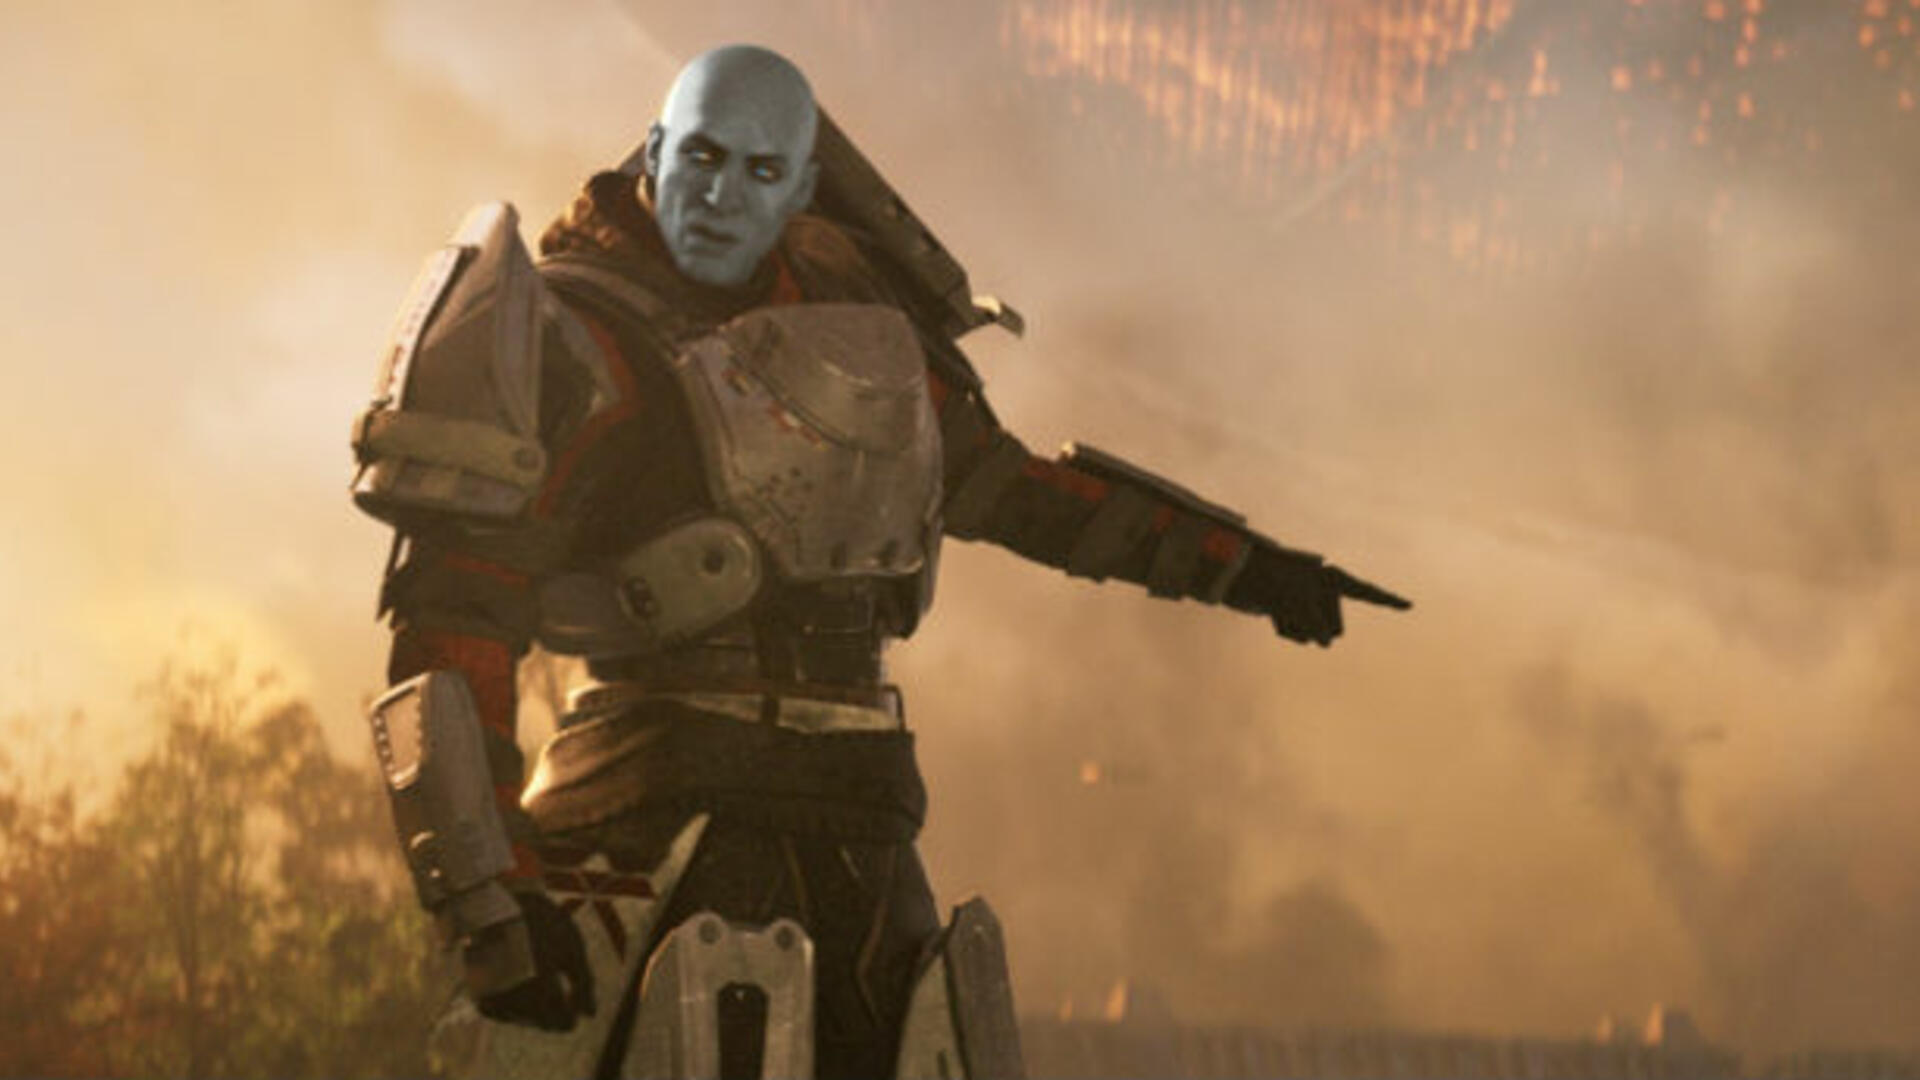 Destiny 2 Launches, but Some Players are Stuck in Server Queues - Bungie Issues Advice